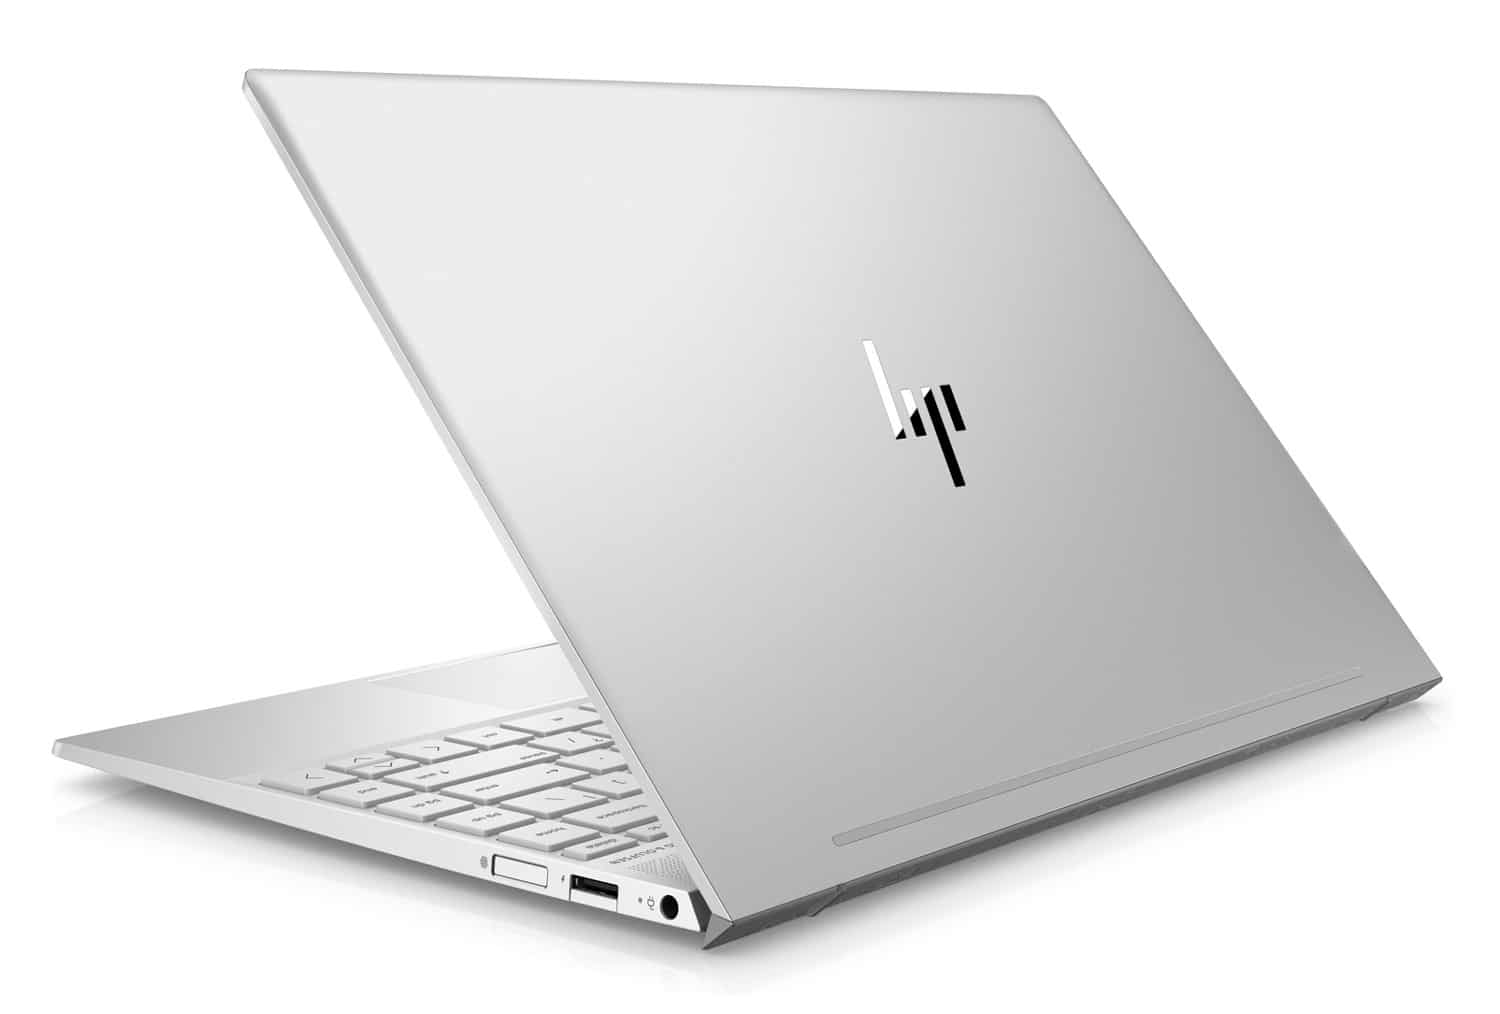 "HP Envy 13-ah0007nf, Ultrabook 13"" IPS Quad i7 SSD 256 (759€)"